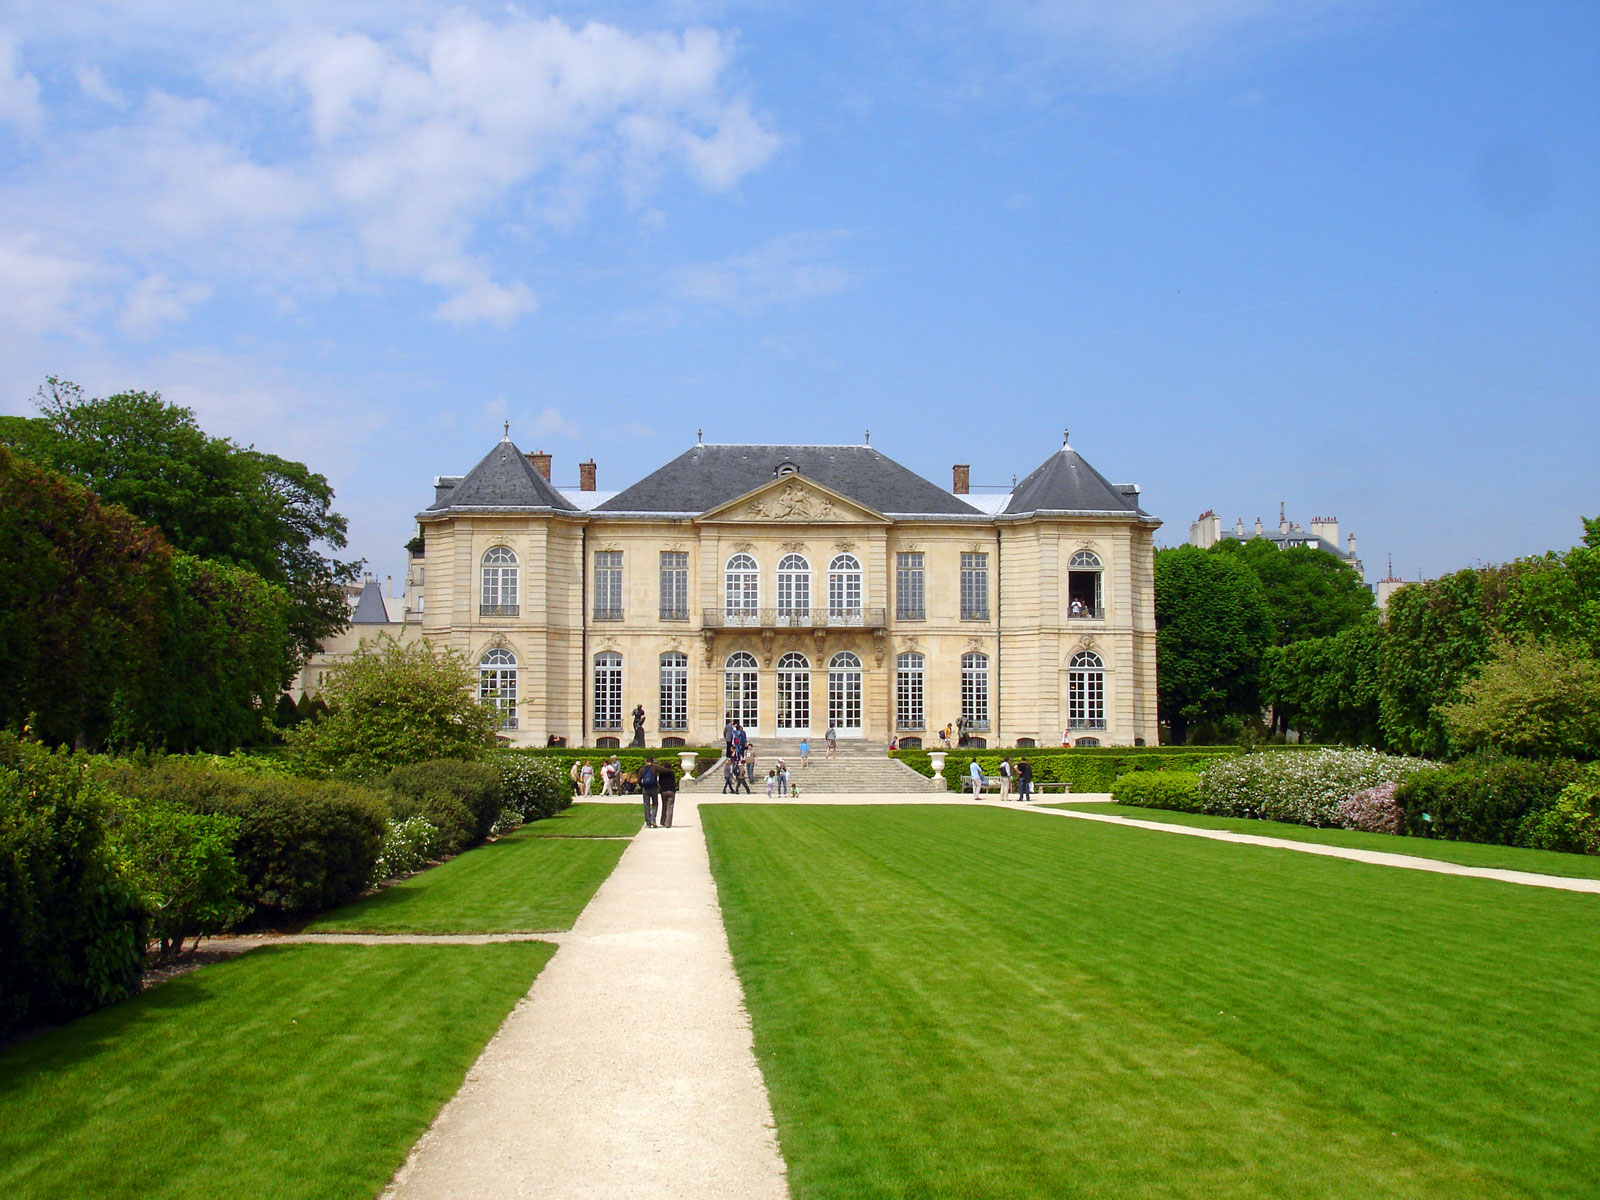 Musee Rodin Museum in Paris